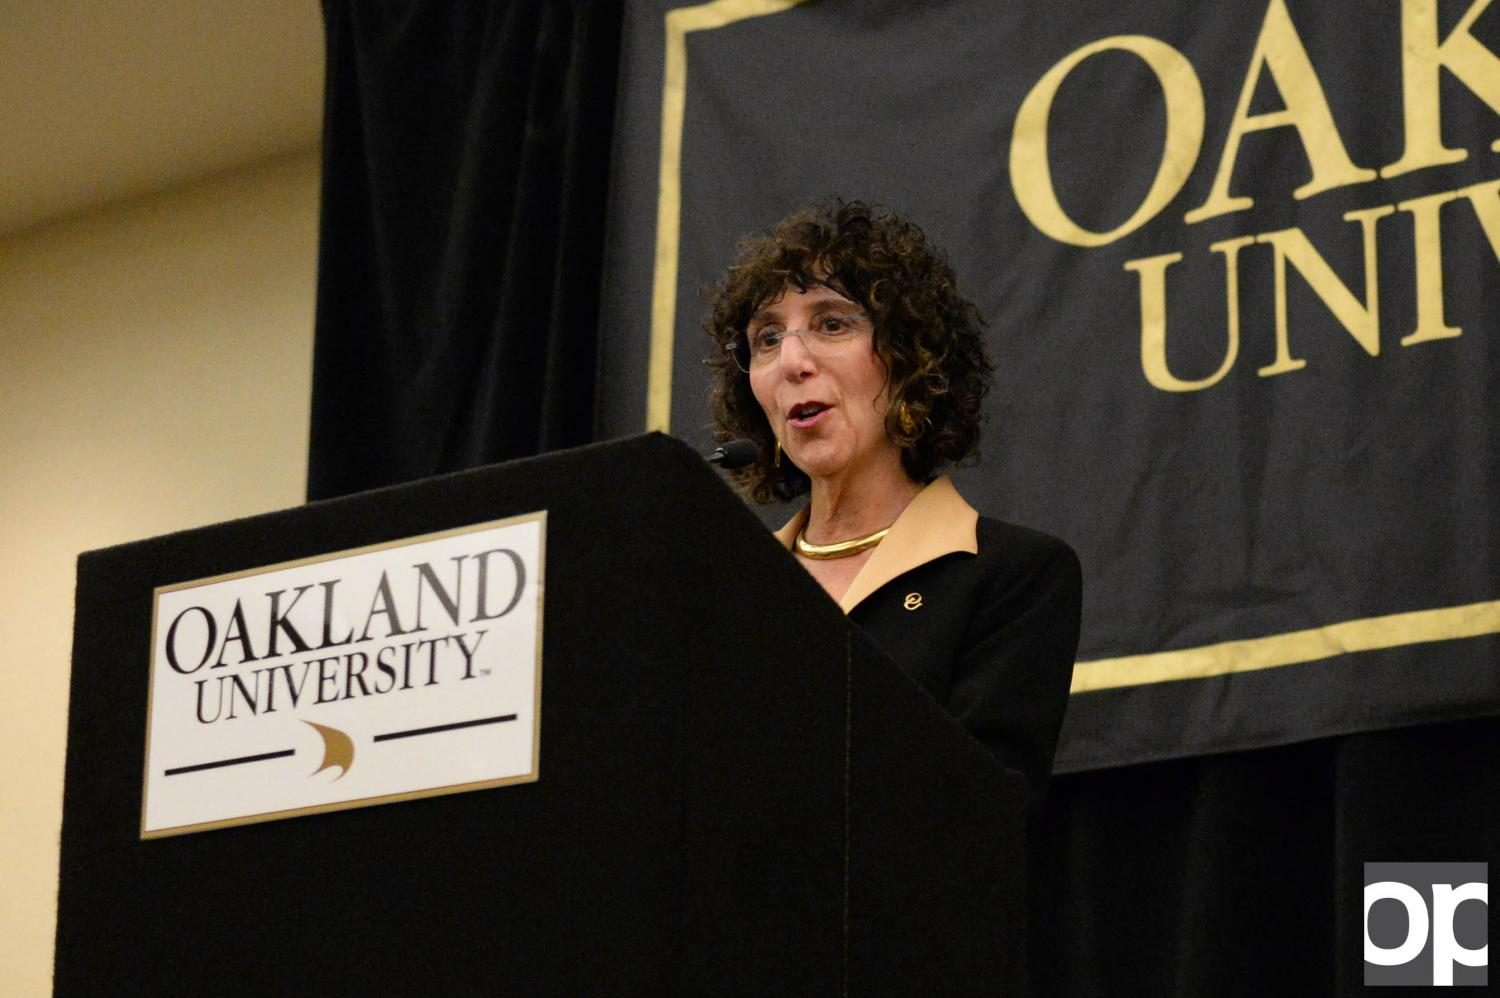 Ora+Hirsch+Pescovitz+will+be+Oakland+University%27s+highest+paid+president+to+date..